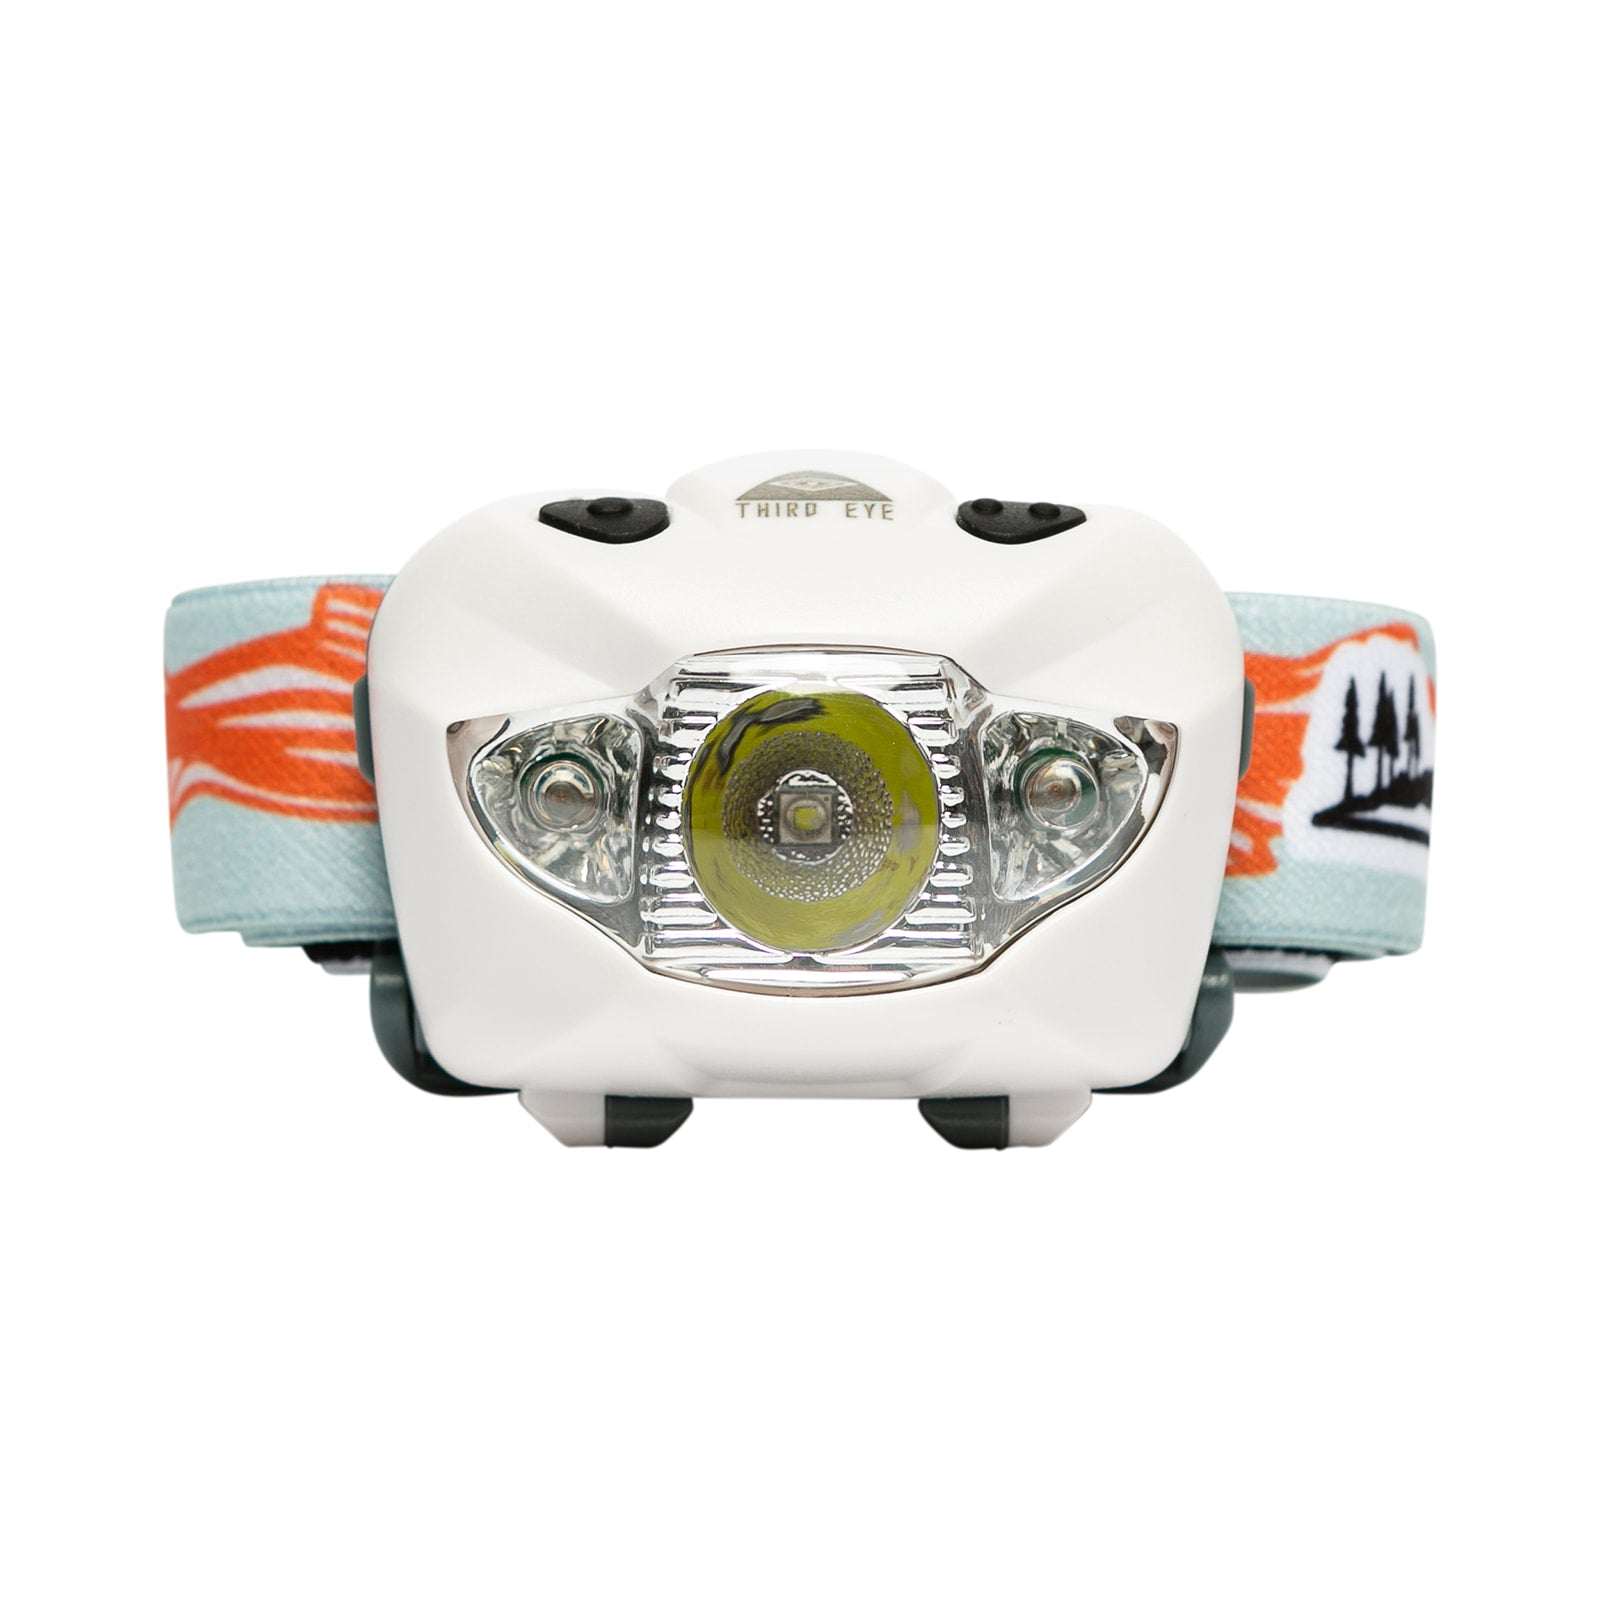 Woosah x Third Eye Fish Headlamp